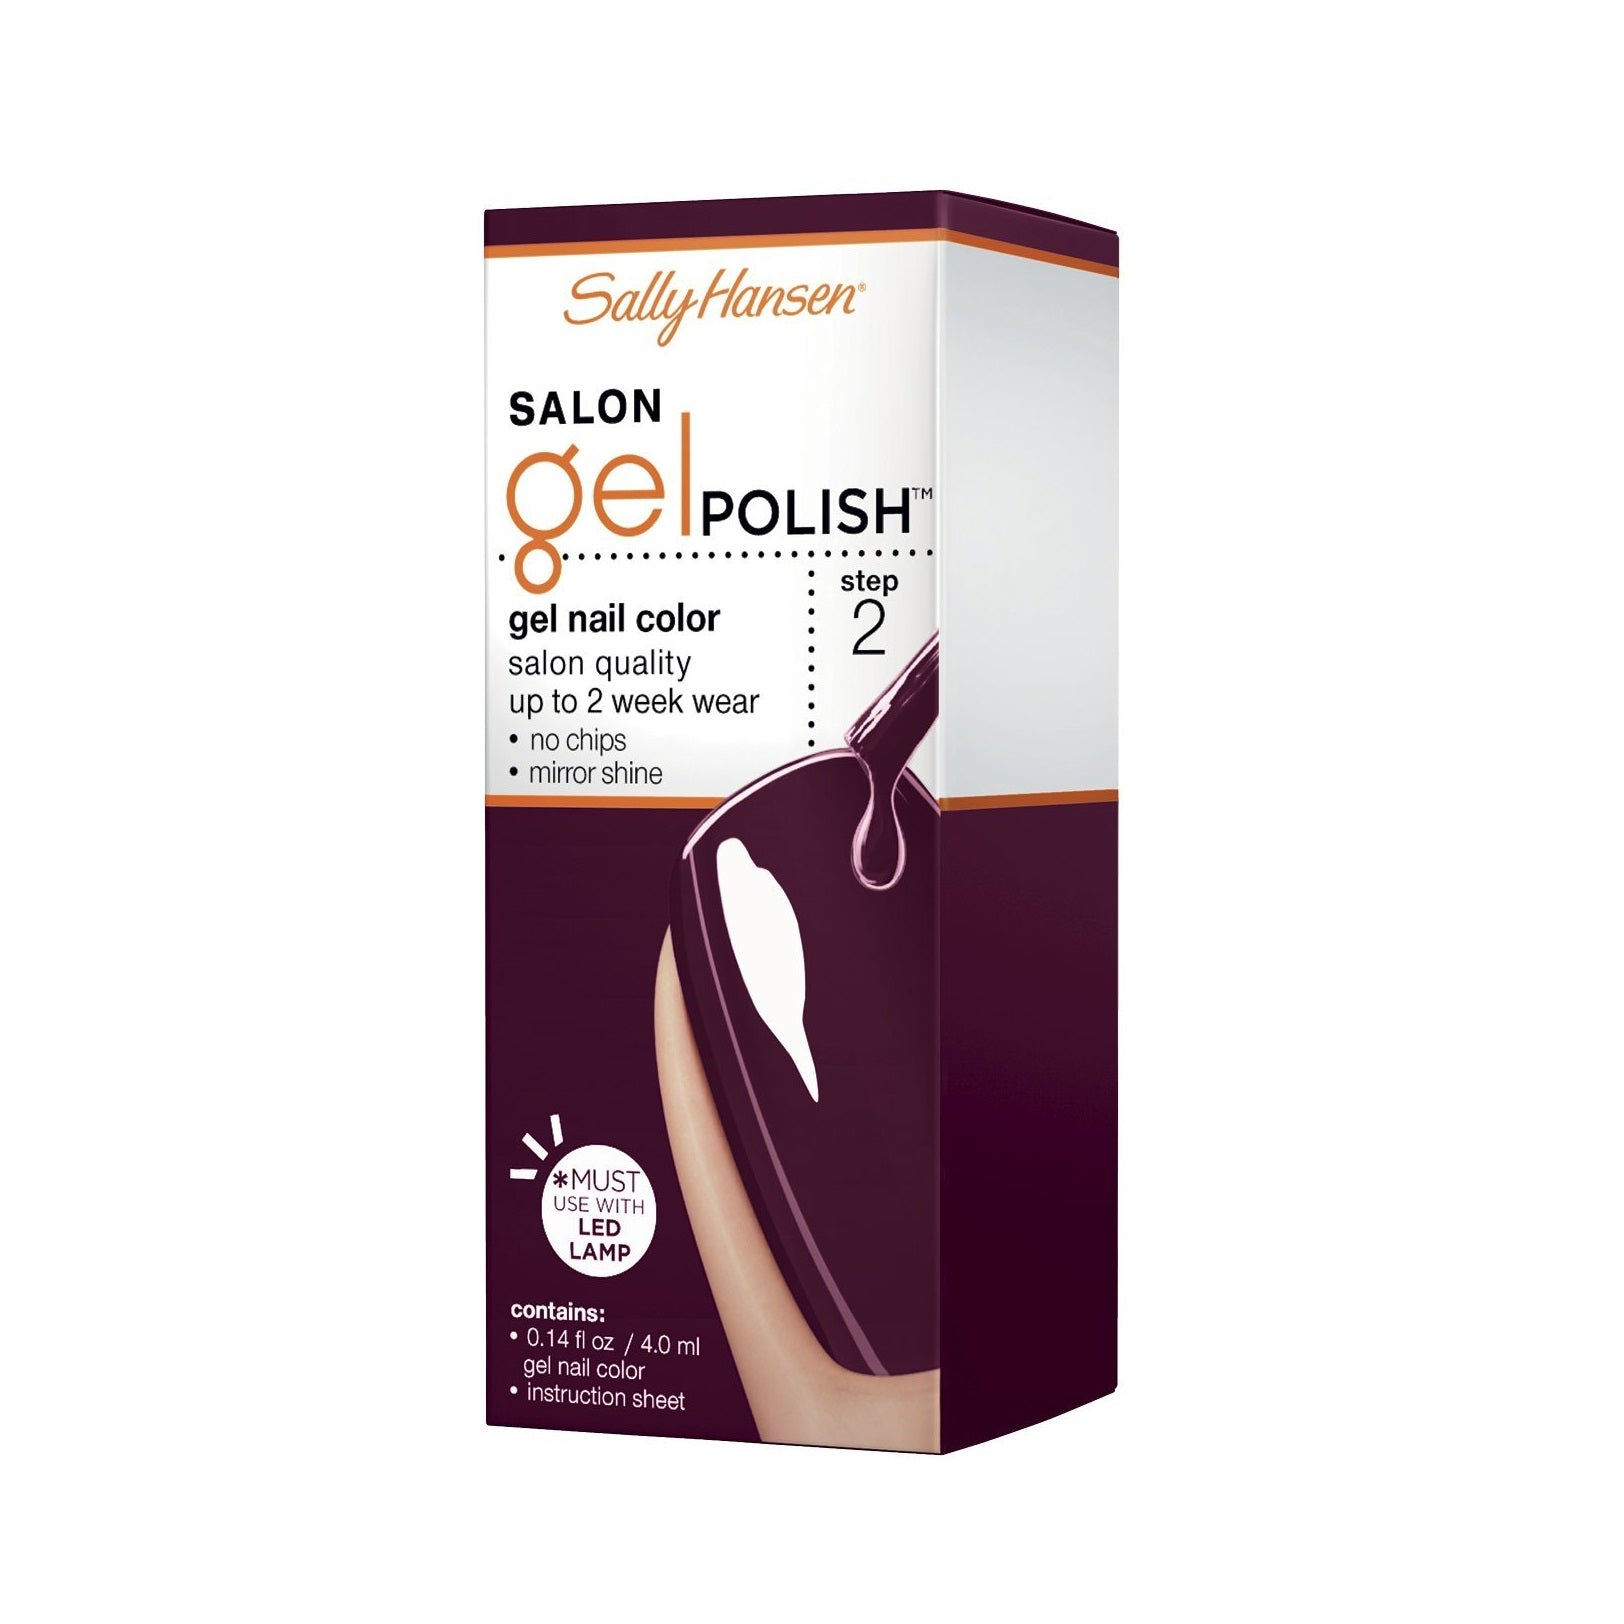 Sally Hansen Gel Polish step 2, lakier do paznokci